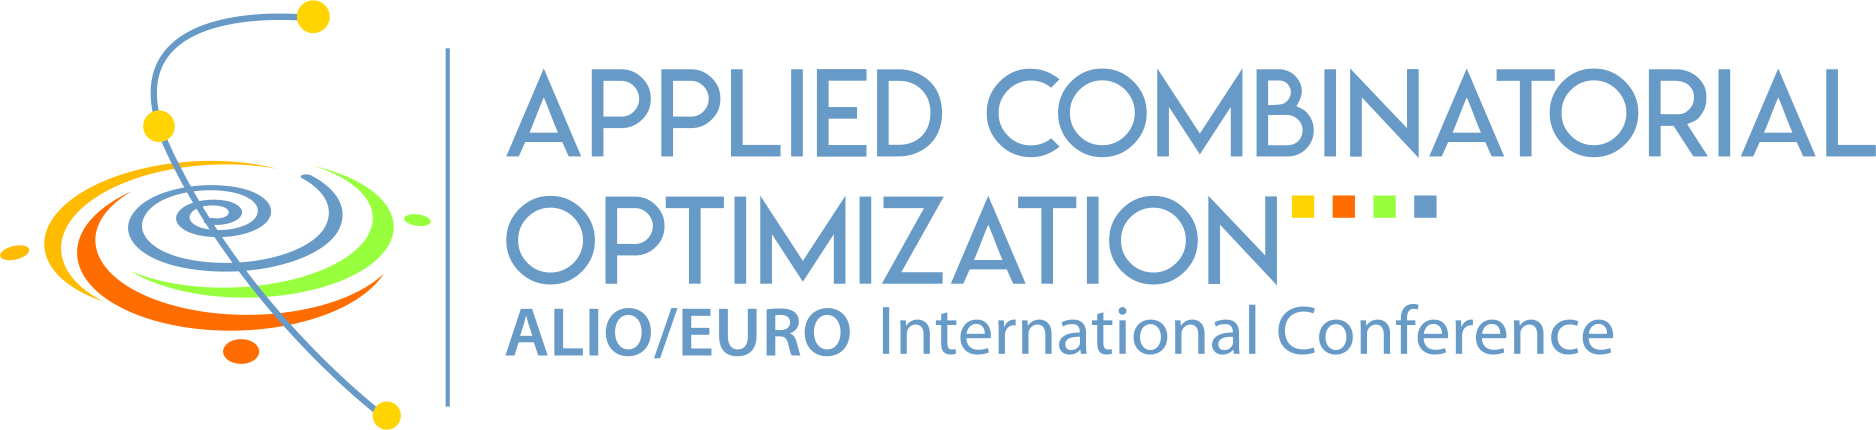 Logo Joint ALIO/EURO International Conference 2021 on Applied Combinatorial Optimization